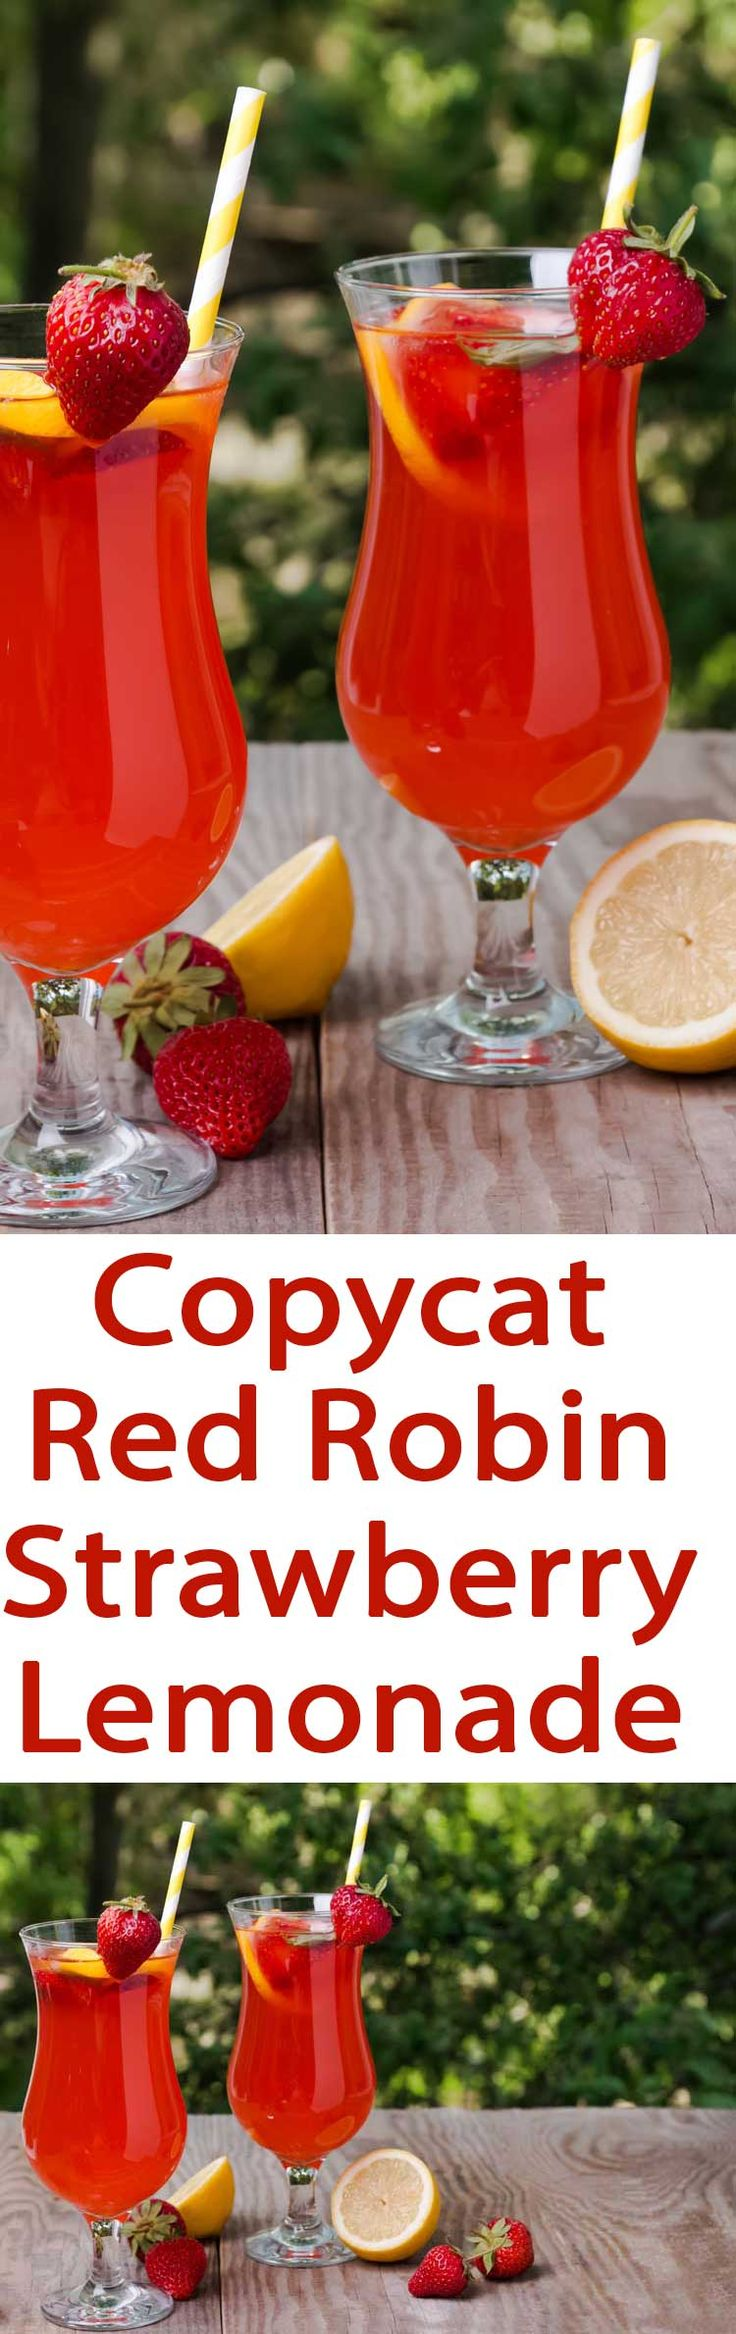 Sweet and Tart Strawberry Lemonade just like Red Robin Strawberry Lemonade Love a good fruity drink recipe? Then this Strawberry Lemonade recipe is exactly what you're looking for. Summer fun is something you'll want to take advantage of, and its best to do that while you are hydrated. We've got a bunch of drink recipes...Read More